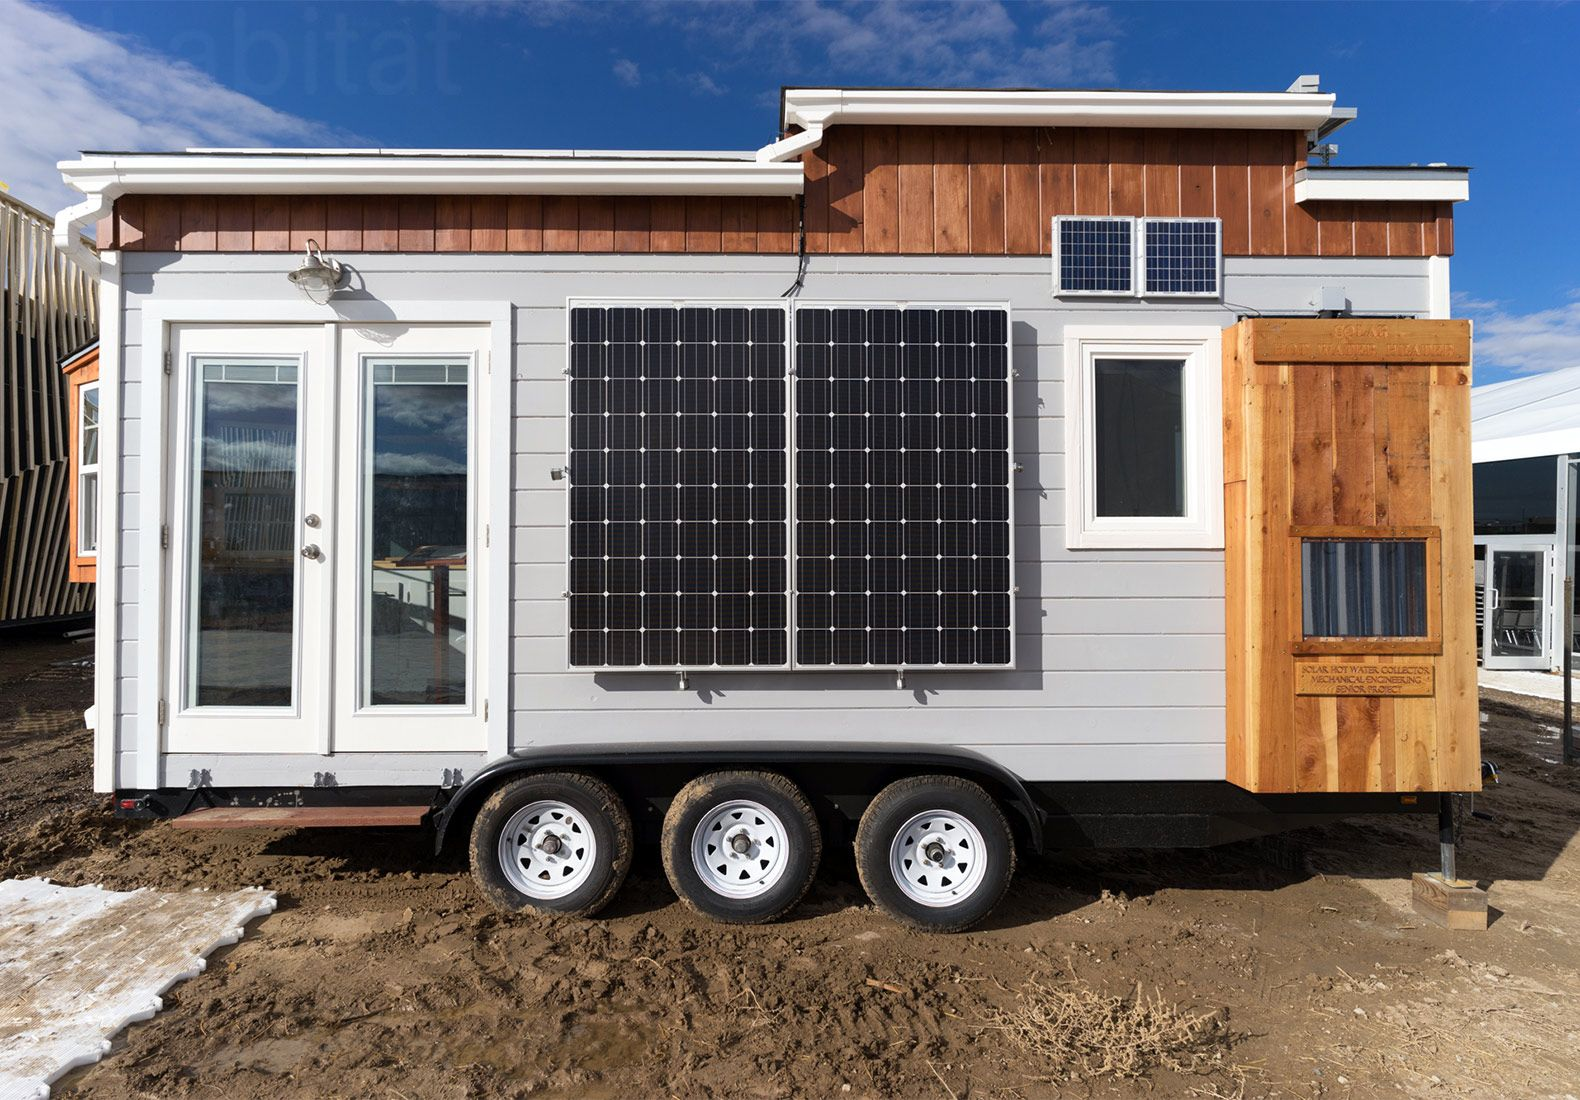 Student Built Solar Powered Tiny Home Represents New Vision For The American Dream Tiny House Design Luxury Landscaping Tiny House